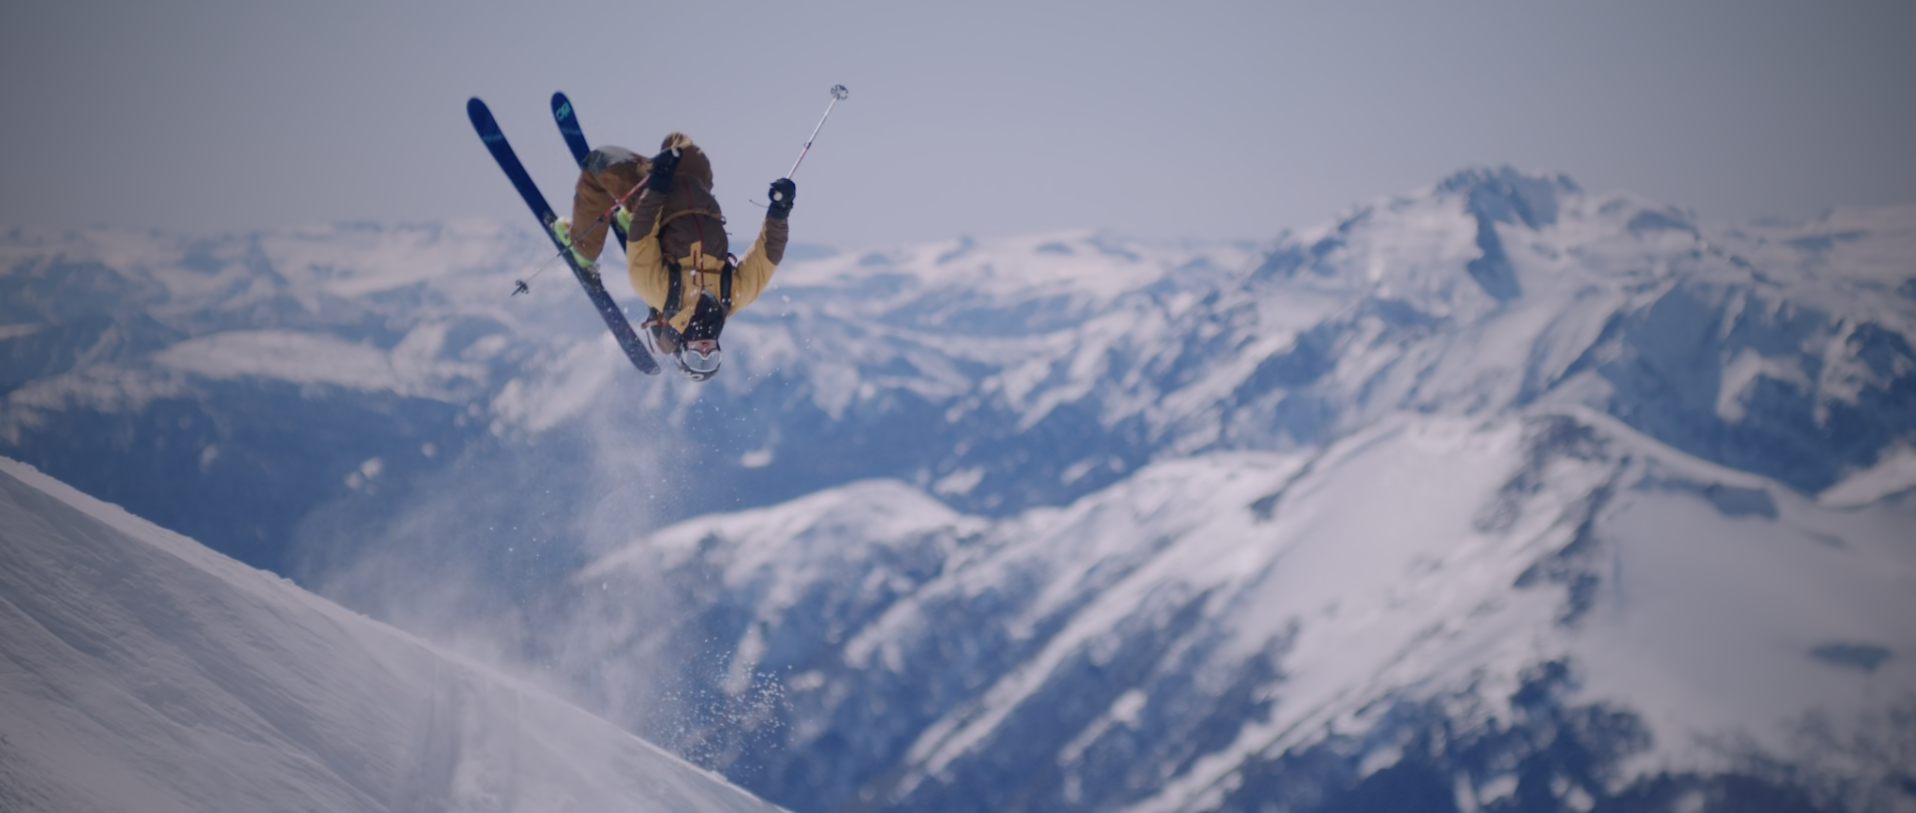 Ski in the stunning mountains of Chile with The Shadow Campaign